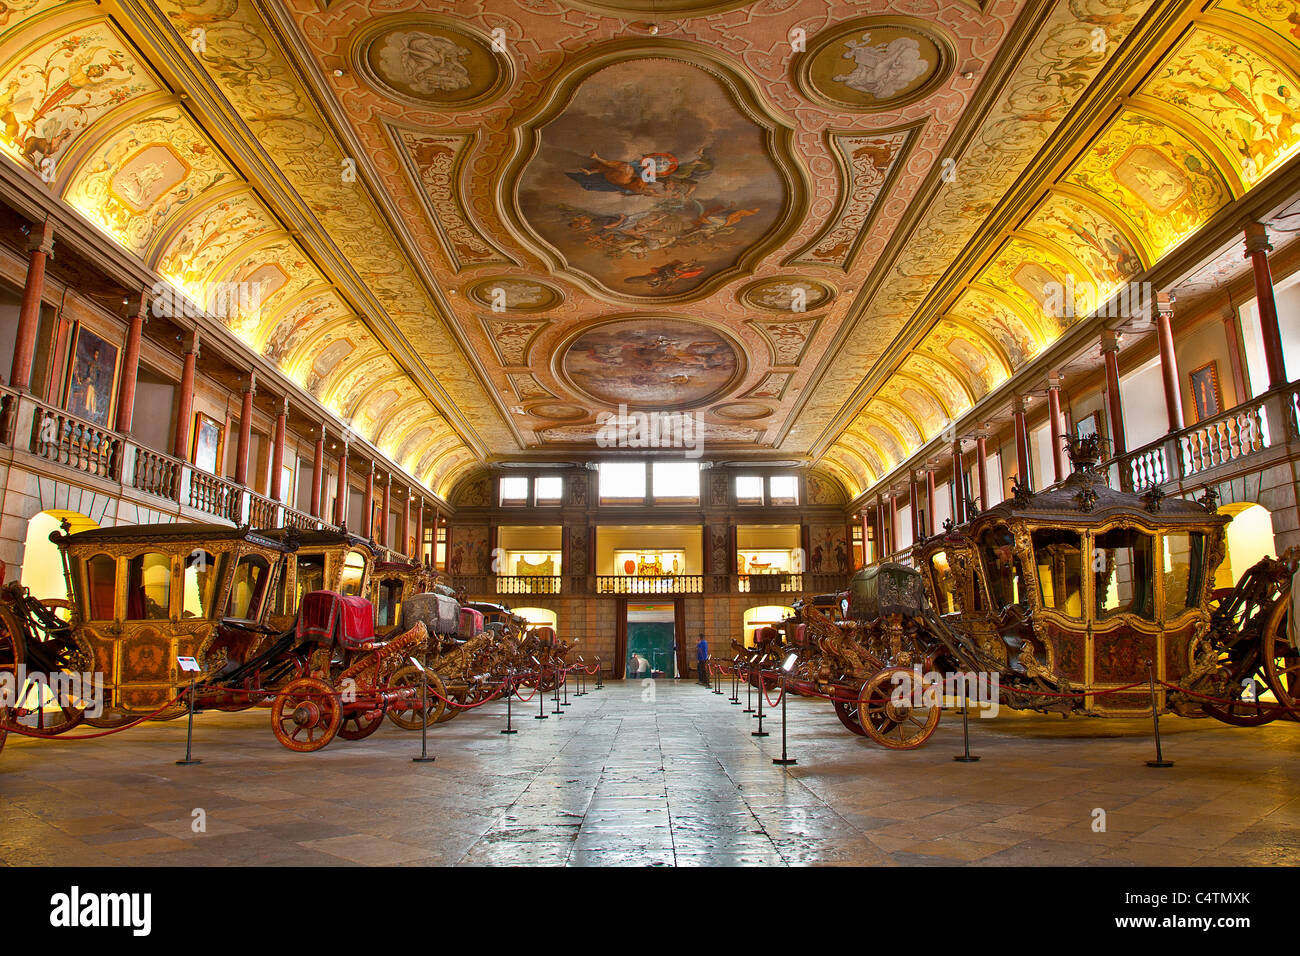 Europe, Portugal, Carriages in the National Coach Museum in Lisbon - Stock Image